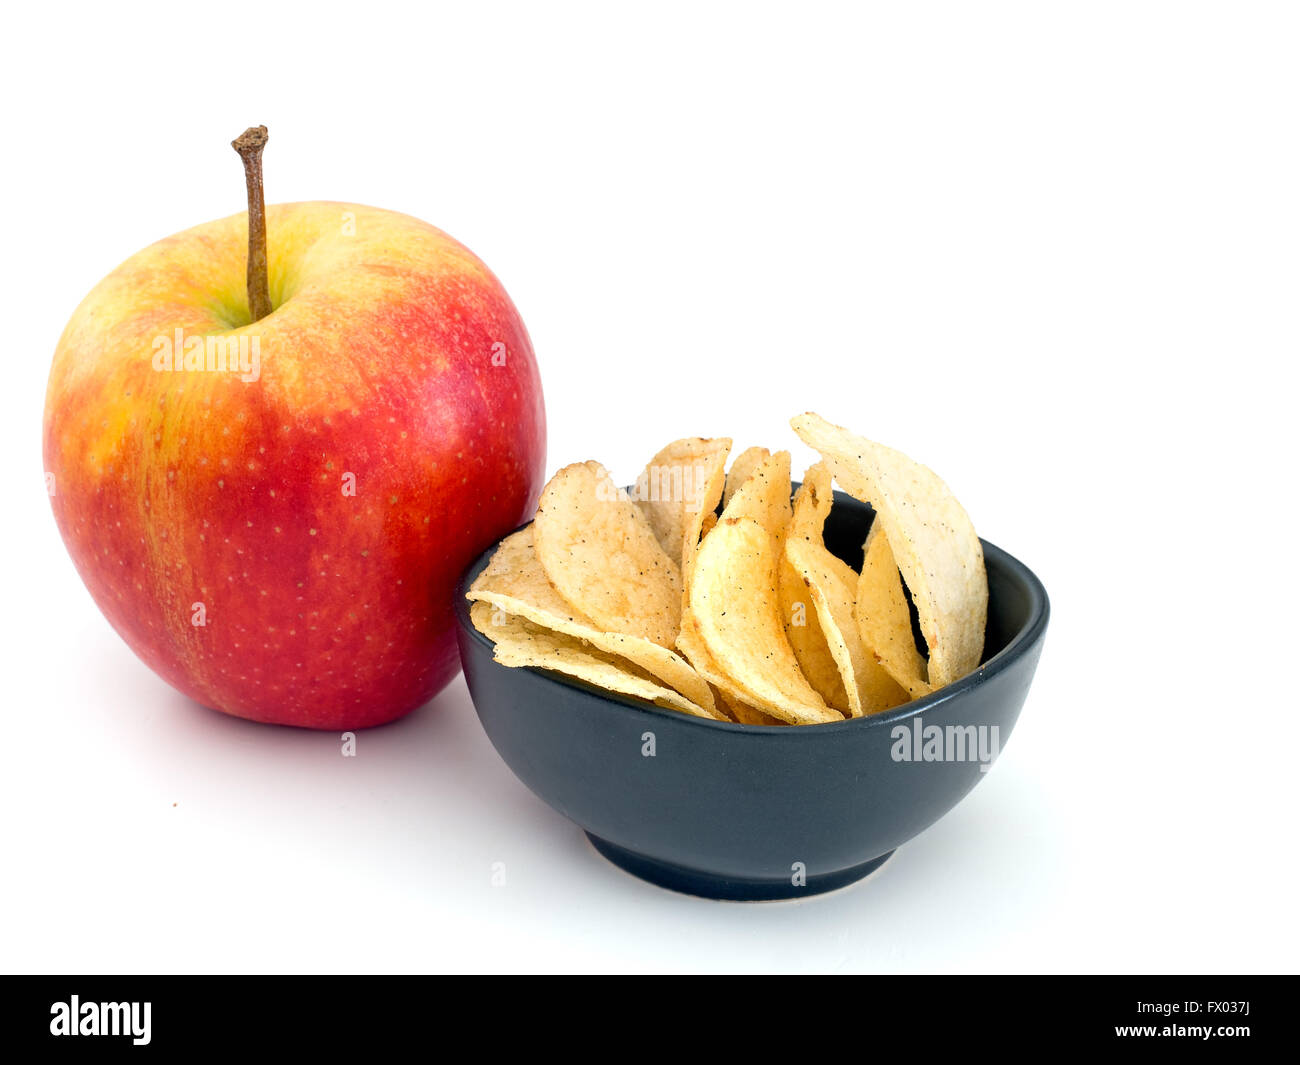 Healthy Eating Choice Healthy Or Unhealthy On White Stock Photo